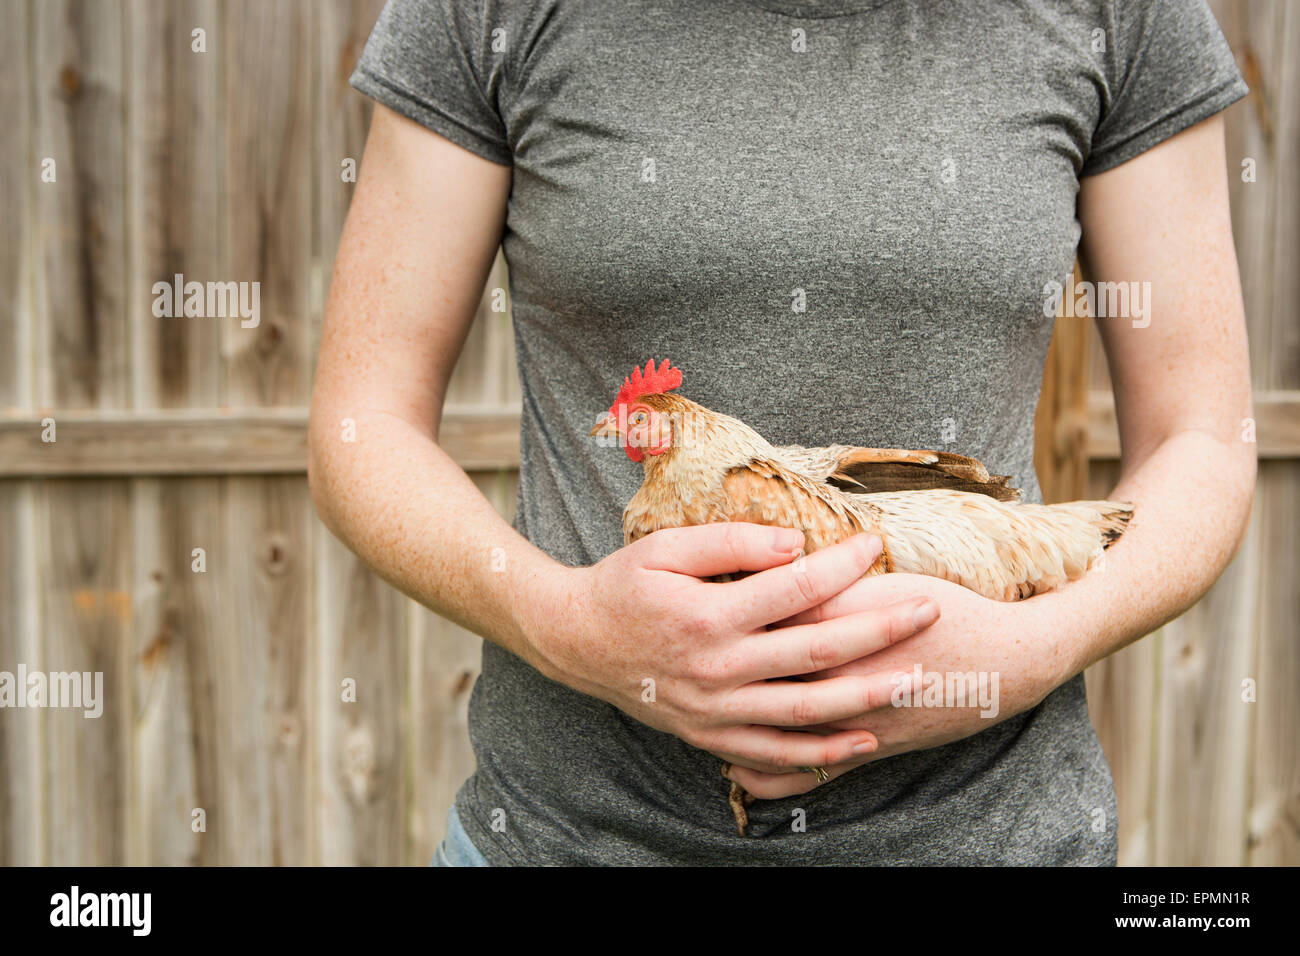 A woman holding a chicken. - Stock Image